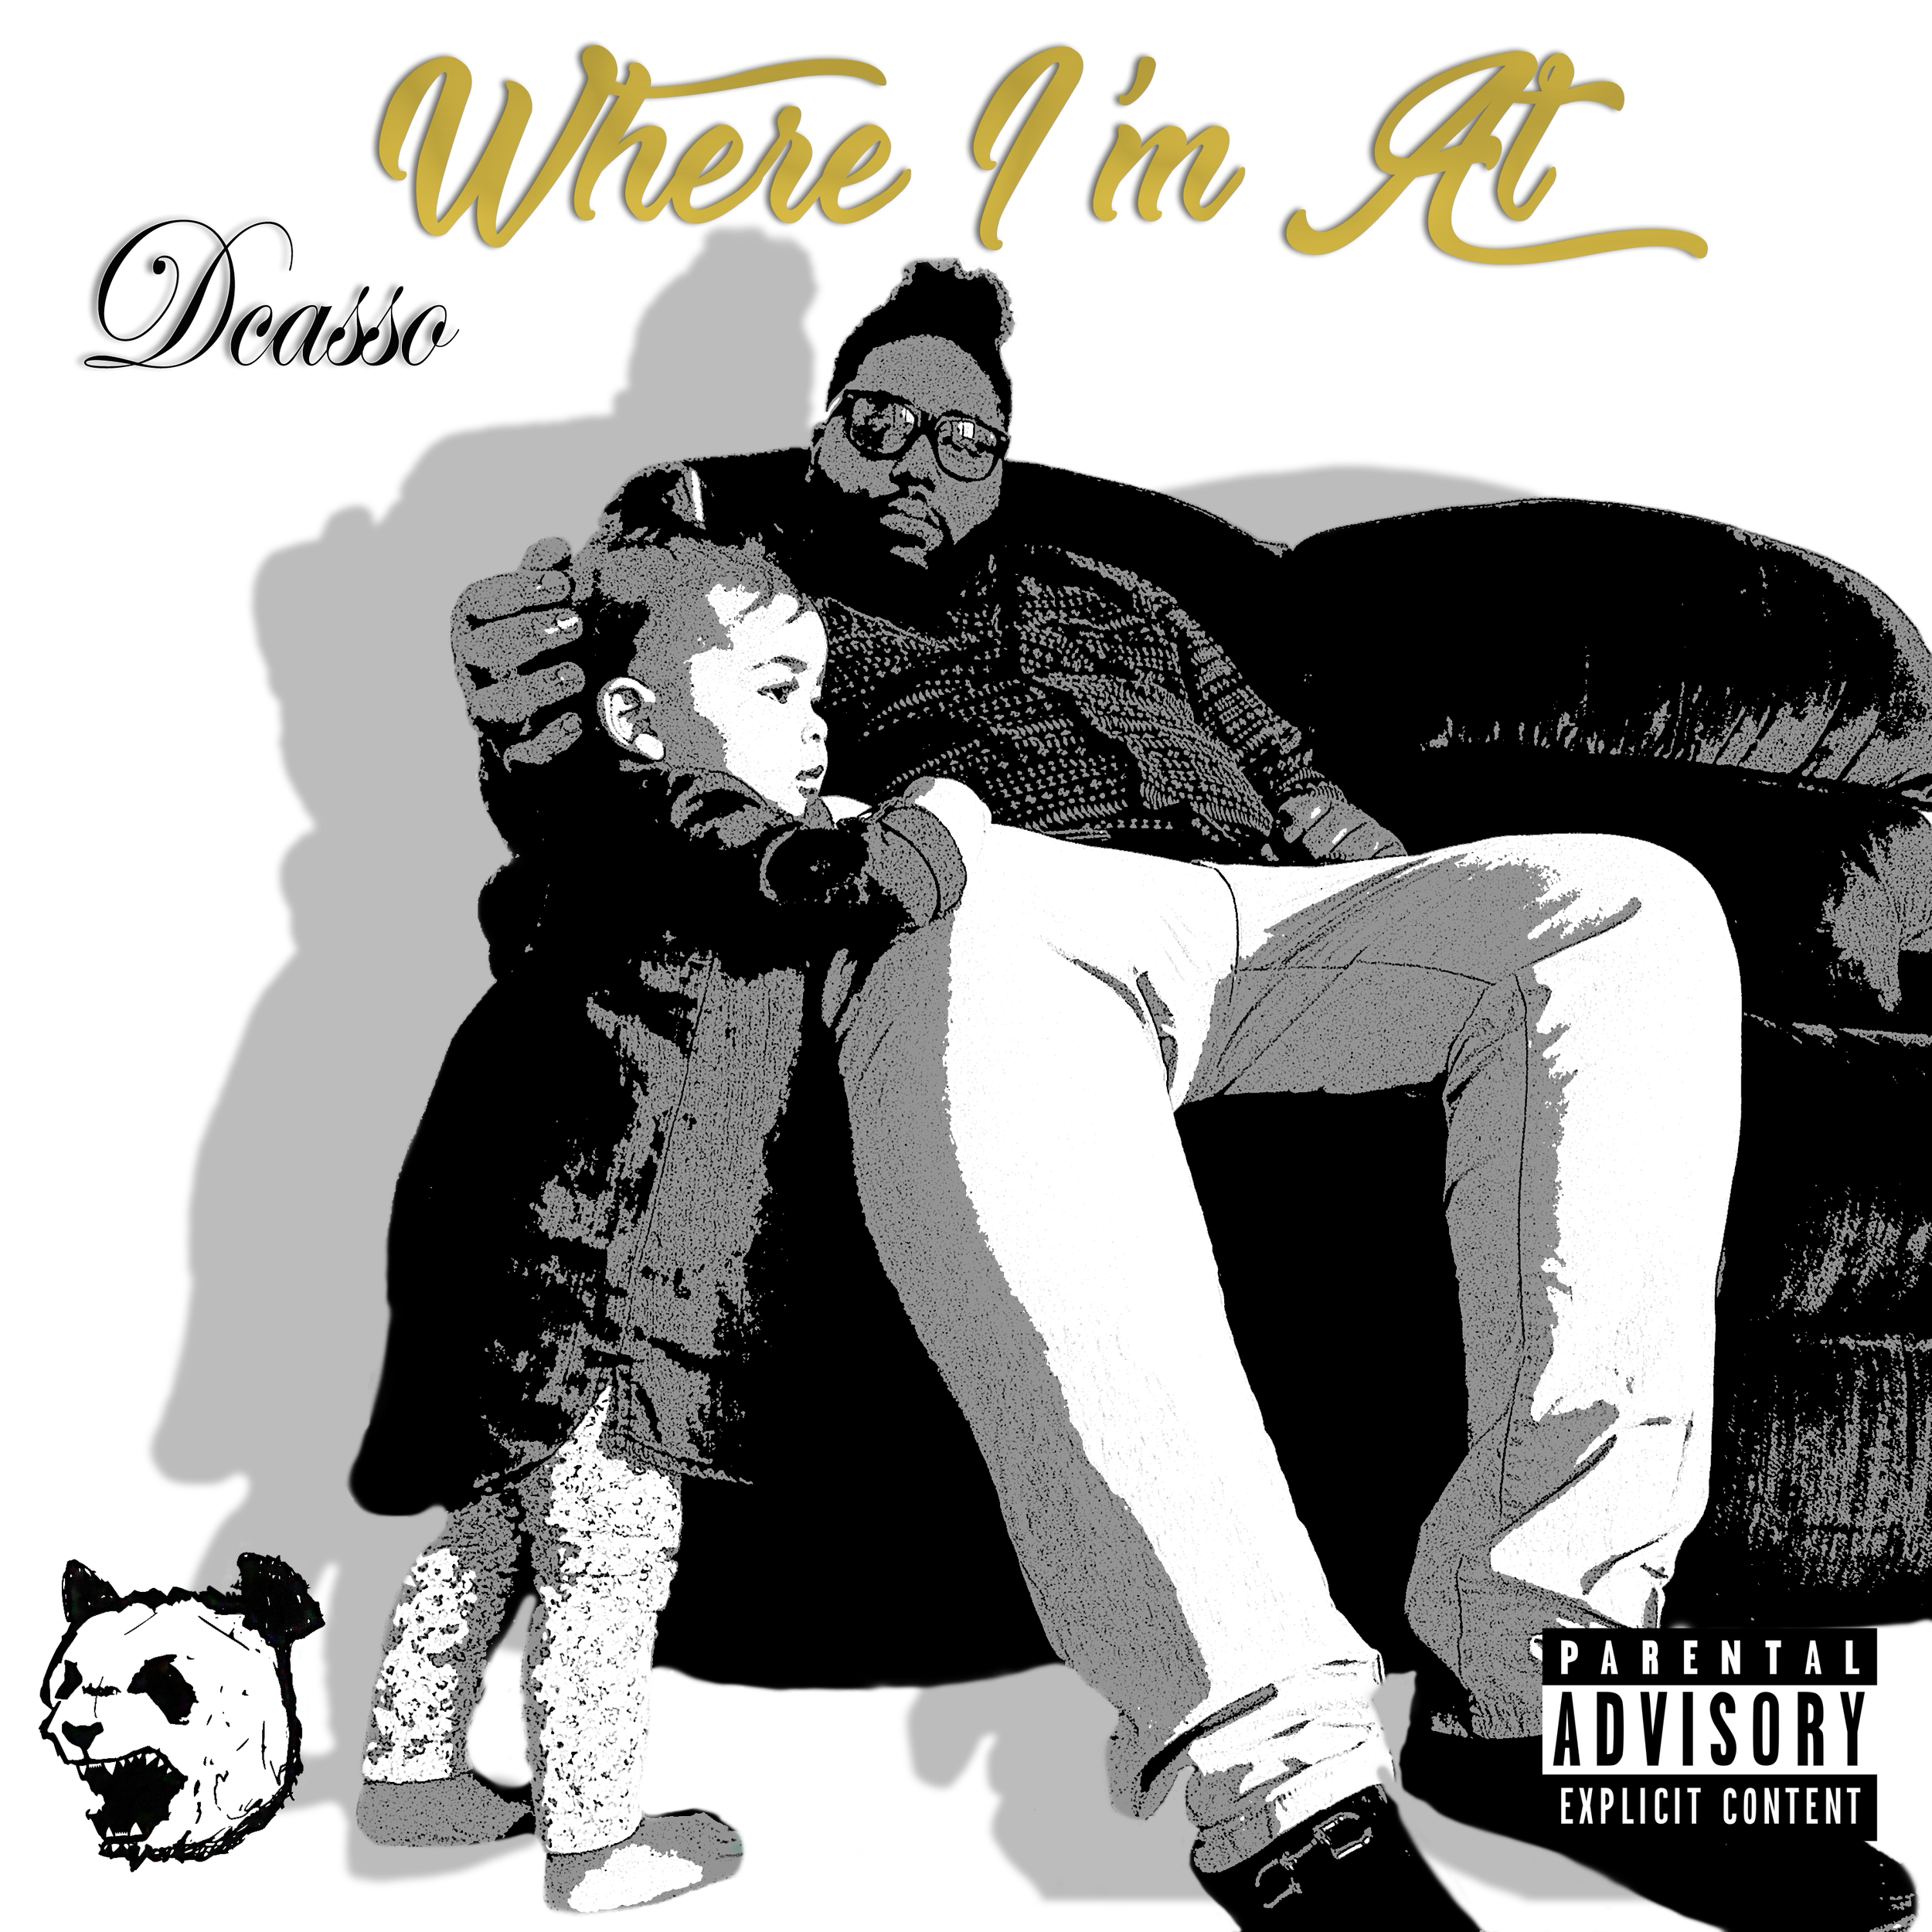 24. Dcasso - Where I'm At